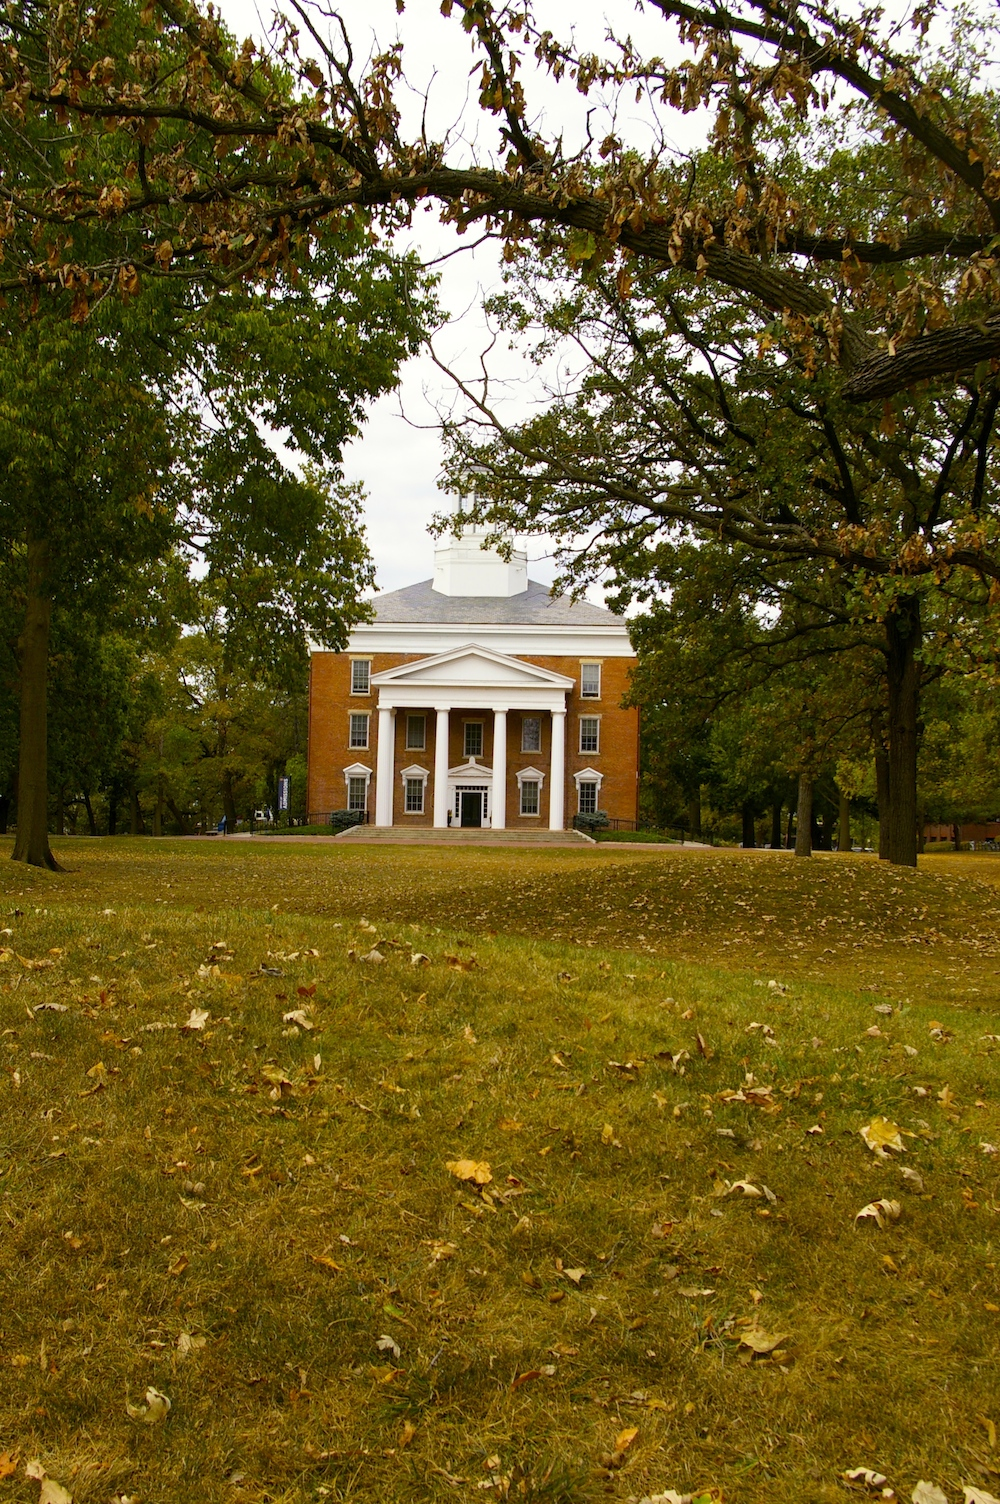 Autumn view of the effigy mounds at Beloit College in Beloit, Wisconsin